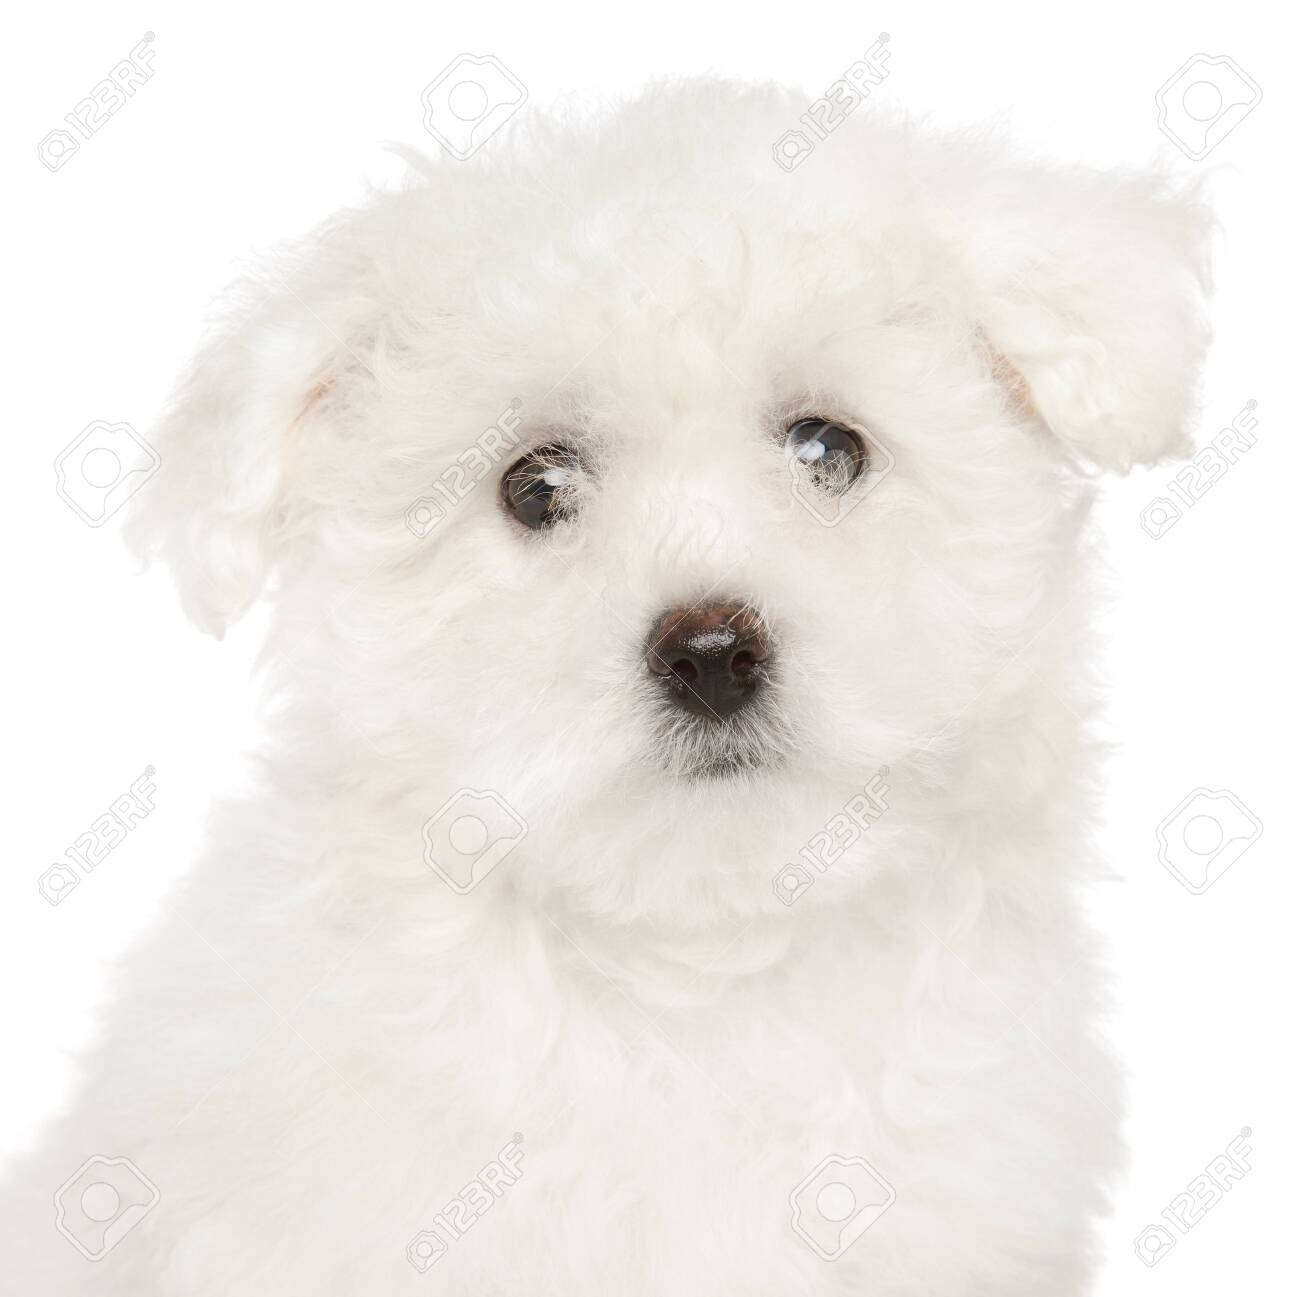 Portrait Of Bichon Frise Puppy On White Background Baby Animal Stock Photo Picture And Royalty Free Image Image 119876623